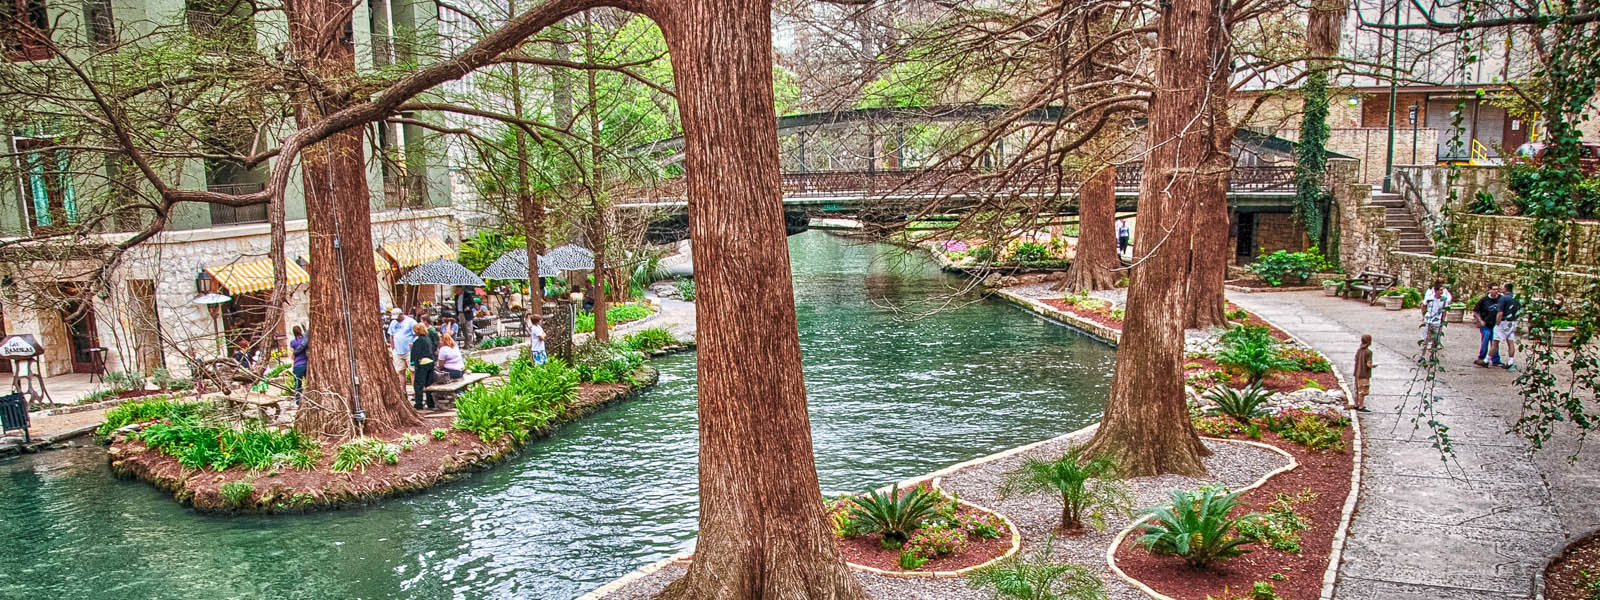 People walking around the San Antonio Riverwalk